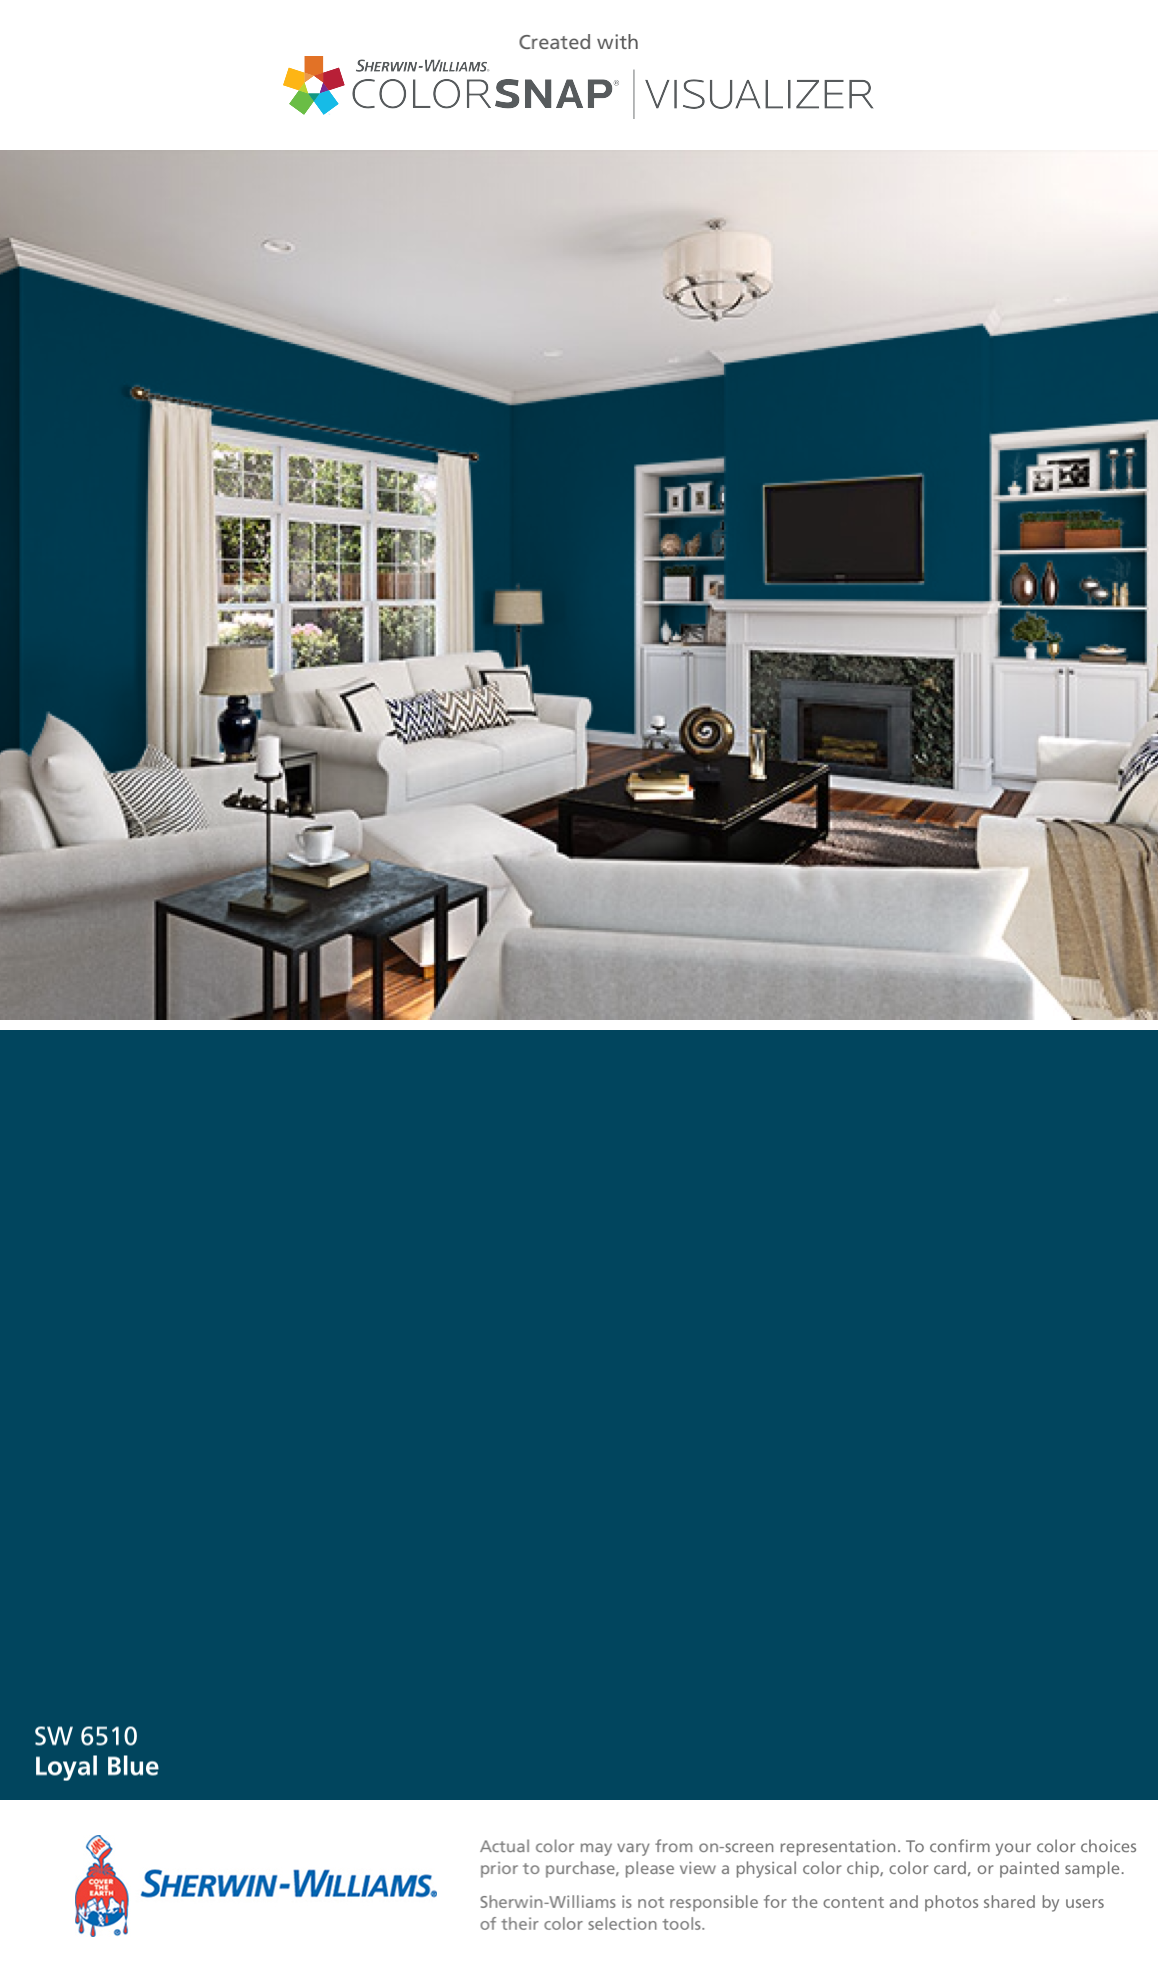 I Found This Color With Colorsnap Visualizer For Iphone By Sherwin Williams Loyal Blue Sw 6510